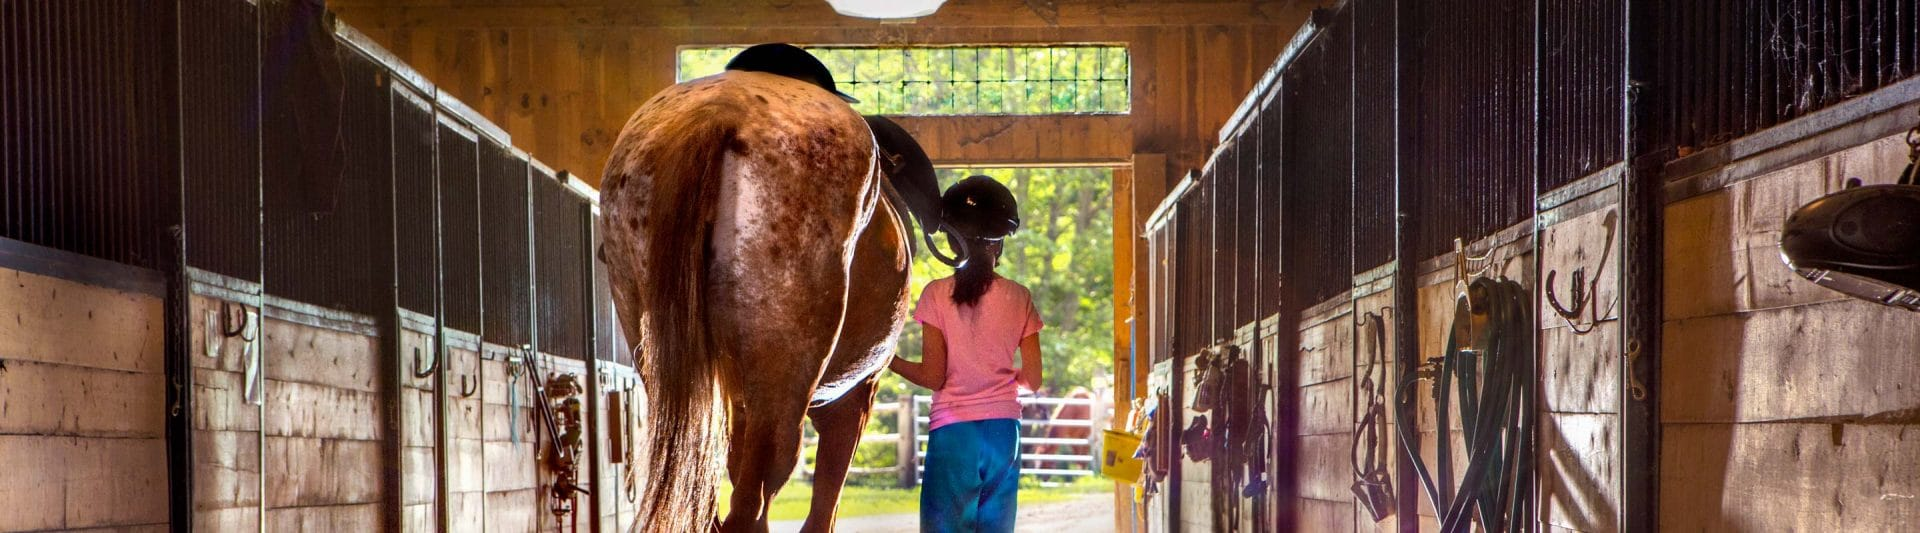 girl walking out of a stable with a horse